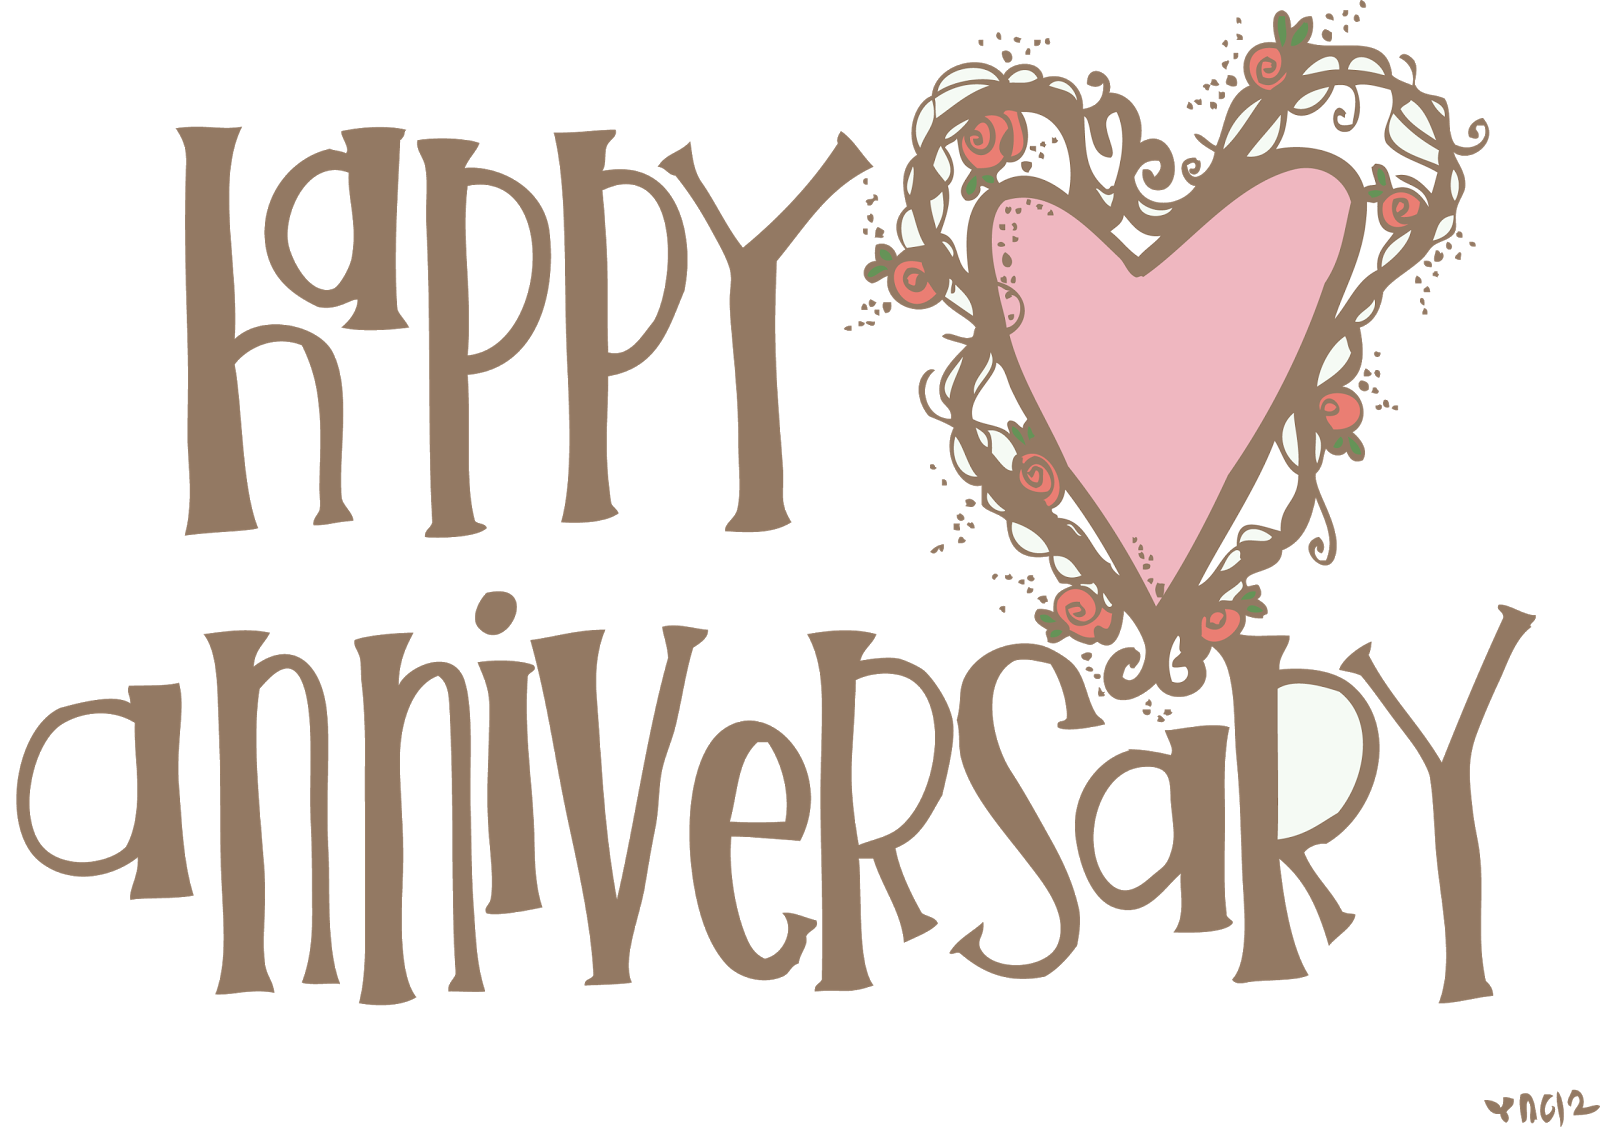 Free happy anniversary background clipart graphic black and white Happy Anniversary Quotes Poster For Cute Event Wishes And Quotes ... graphic black and white